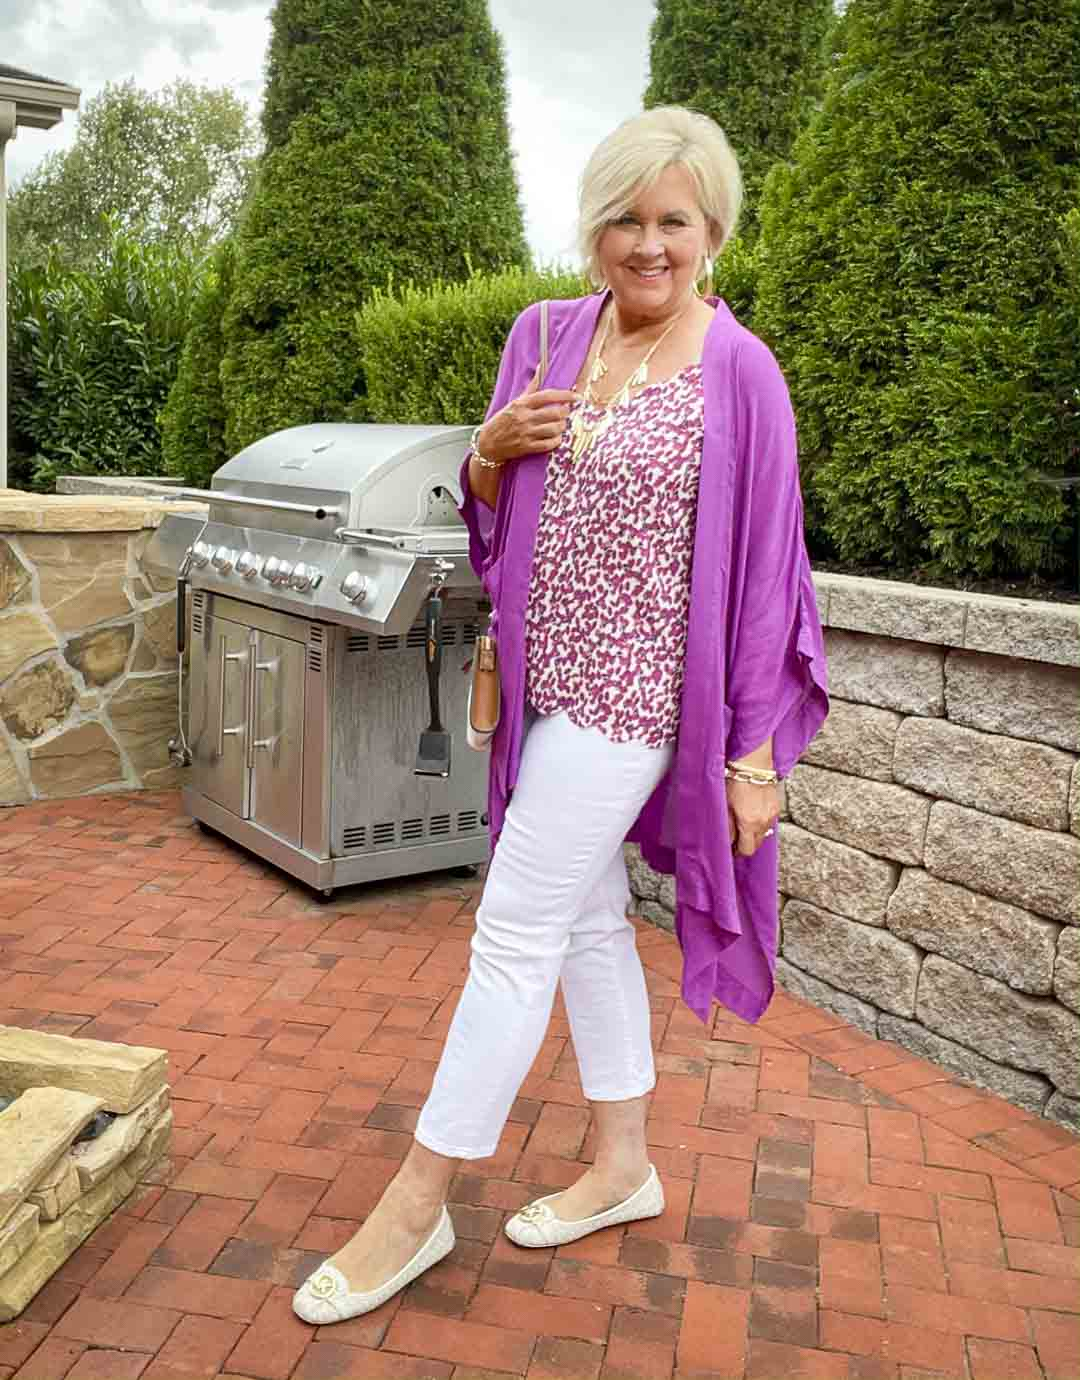 Over 40 fashion blogger, Tania Stephens is wearing a purple duster, a printed camisole, white jeans, and white flats